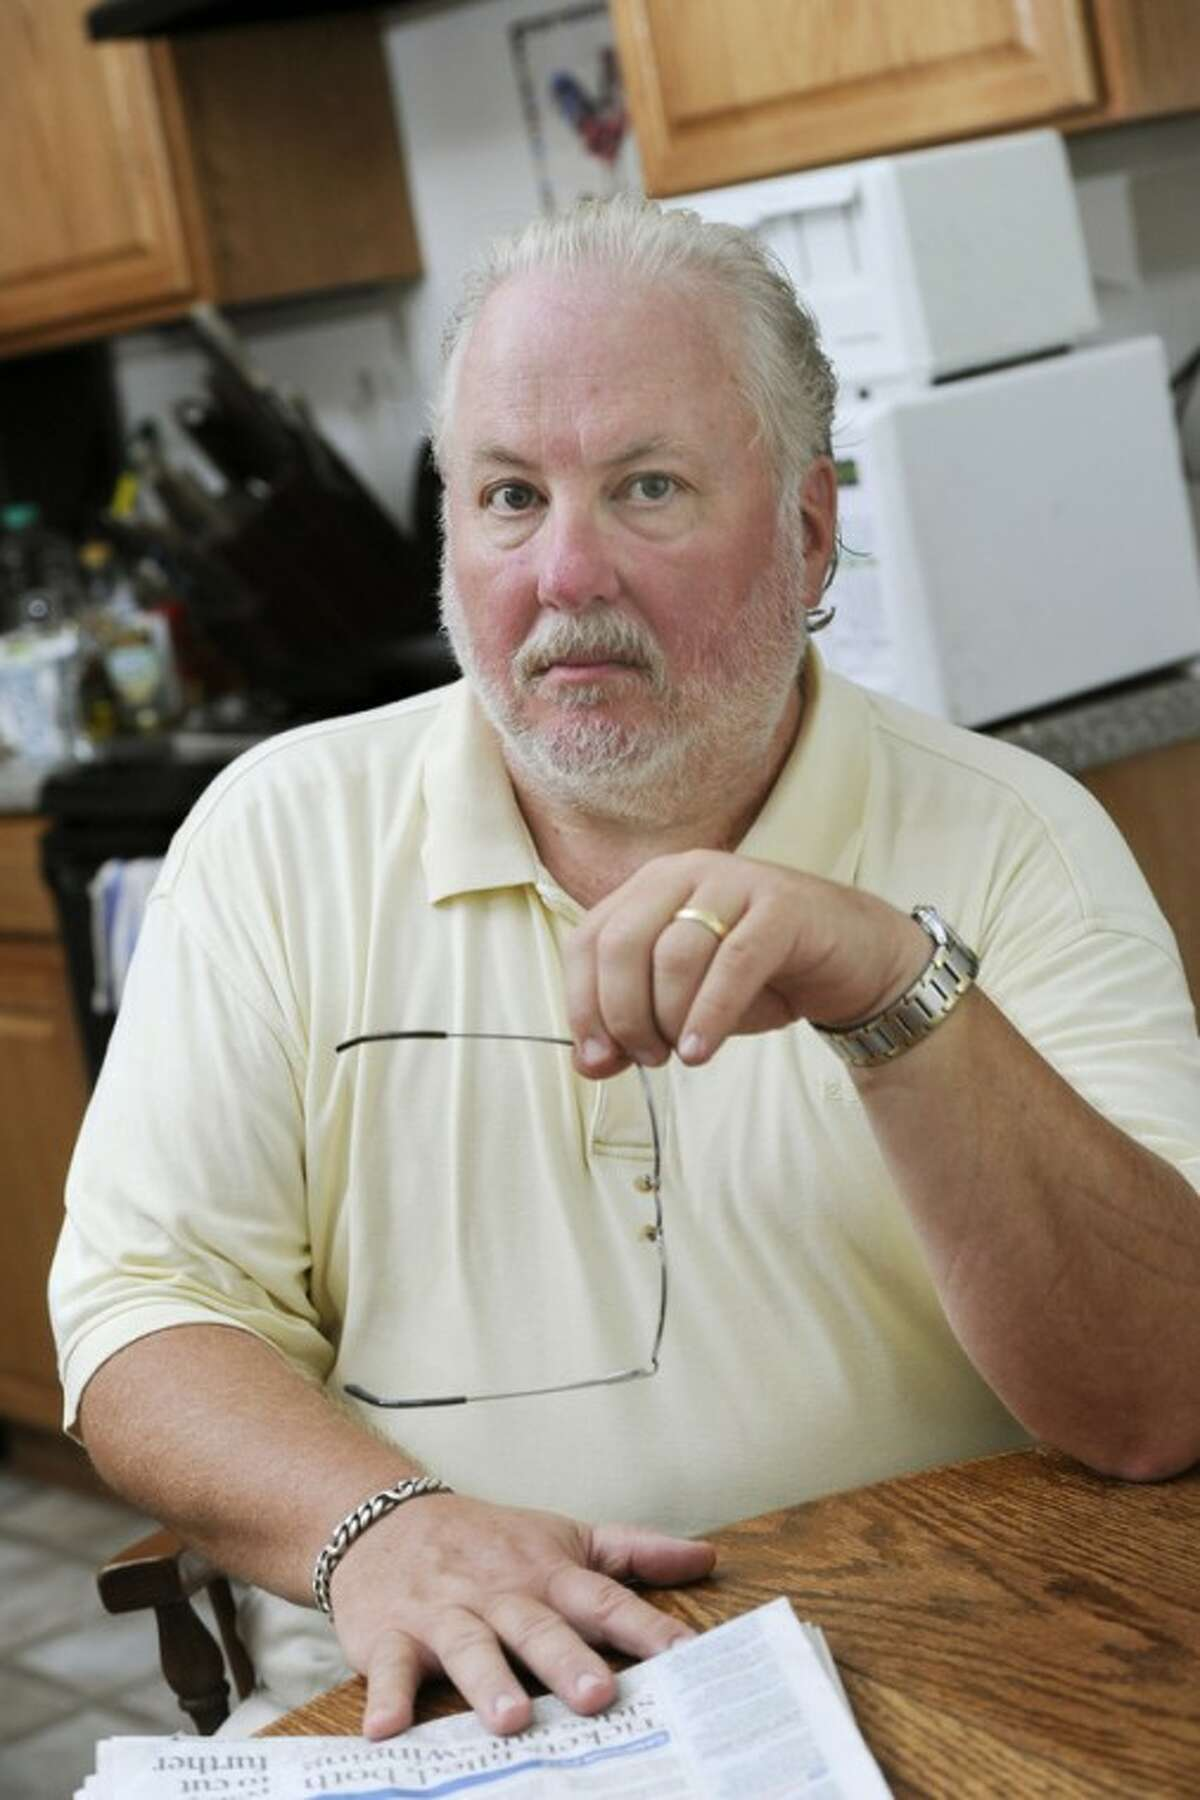 Greg Mann, an unemployed research analyst and real estate appraiser, is pictured at his home Tuesday, Aug. 14, 2012, in Braselton, Ga.. The recession that ended three years ago lingers on as the worst economic recovery since the Great Depression. (AP Photo/John Amis)